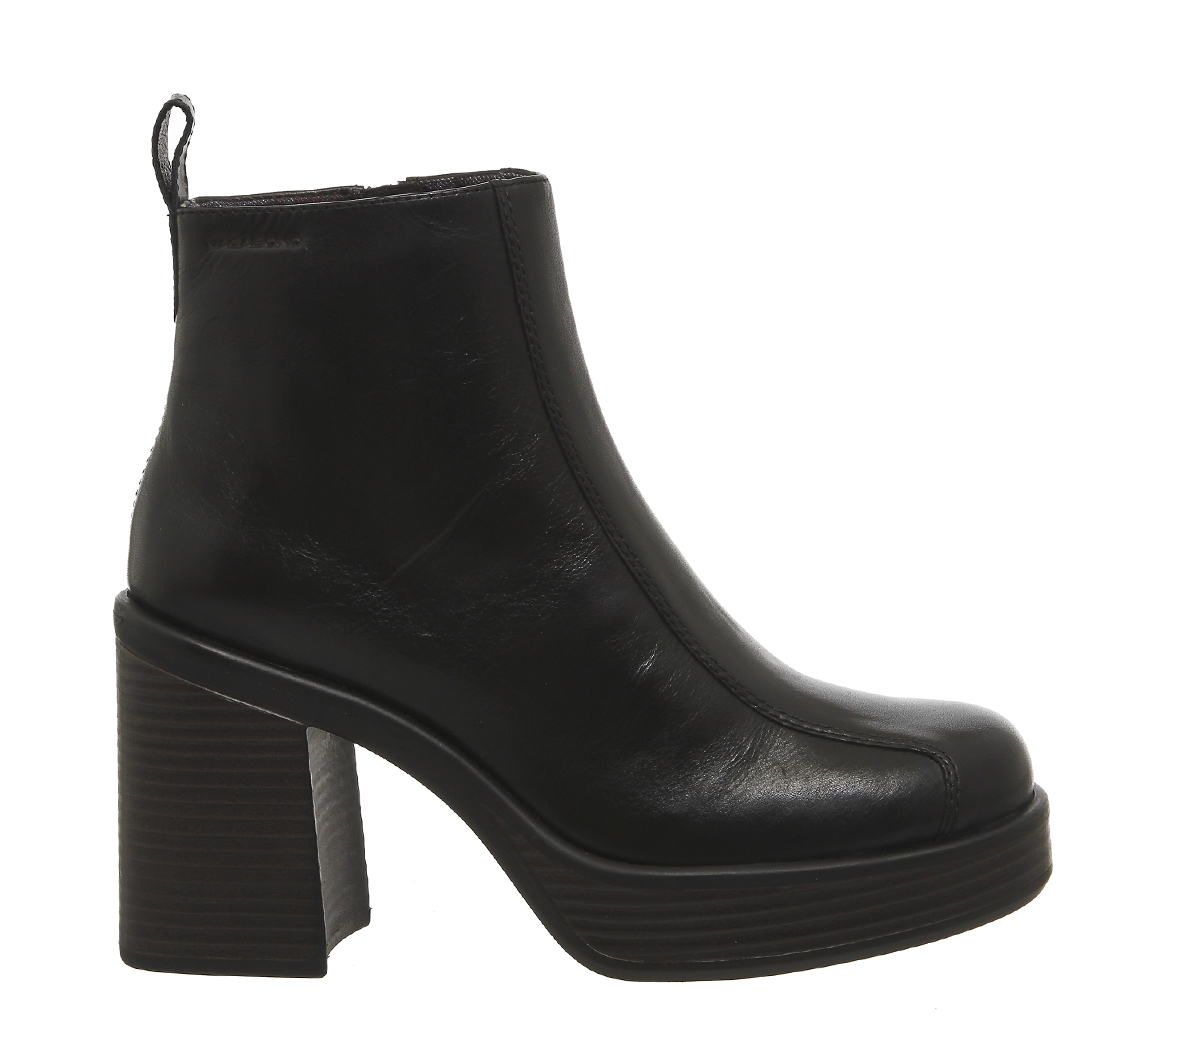 Vagabond Tyra Back Tab Boots in Black